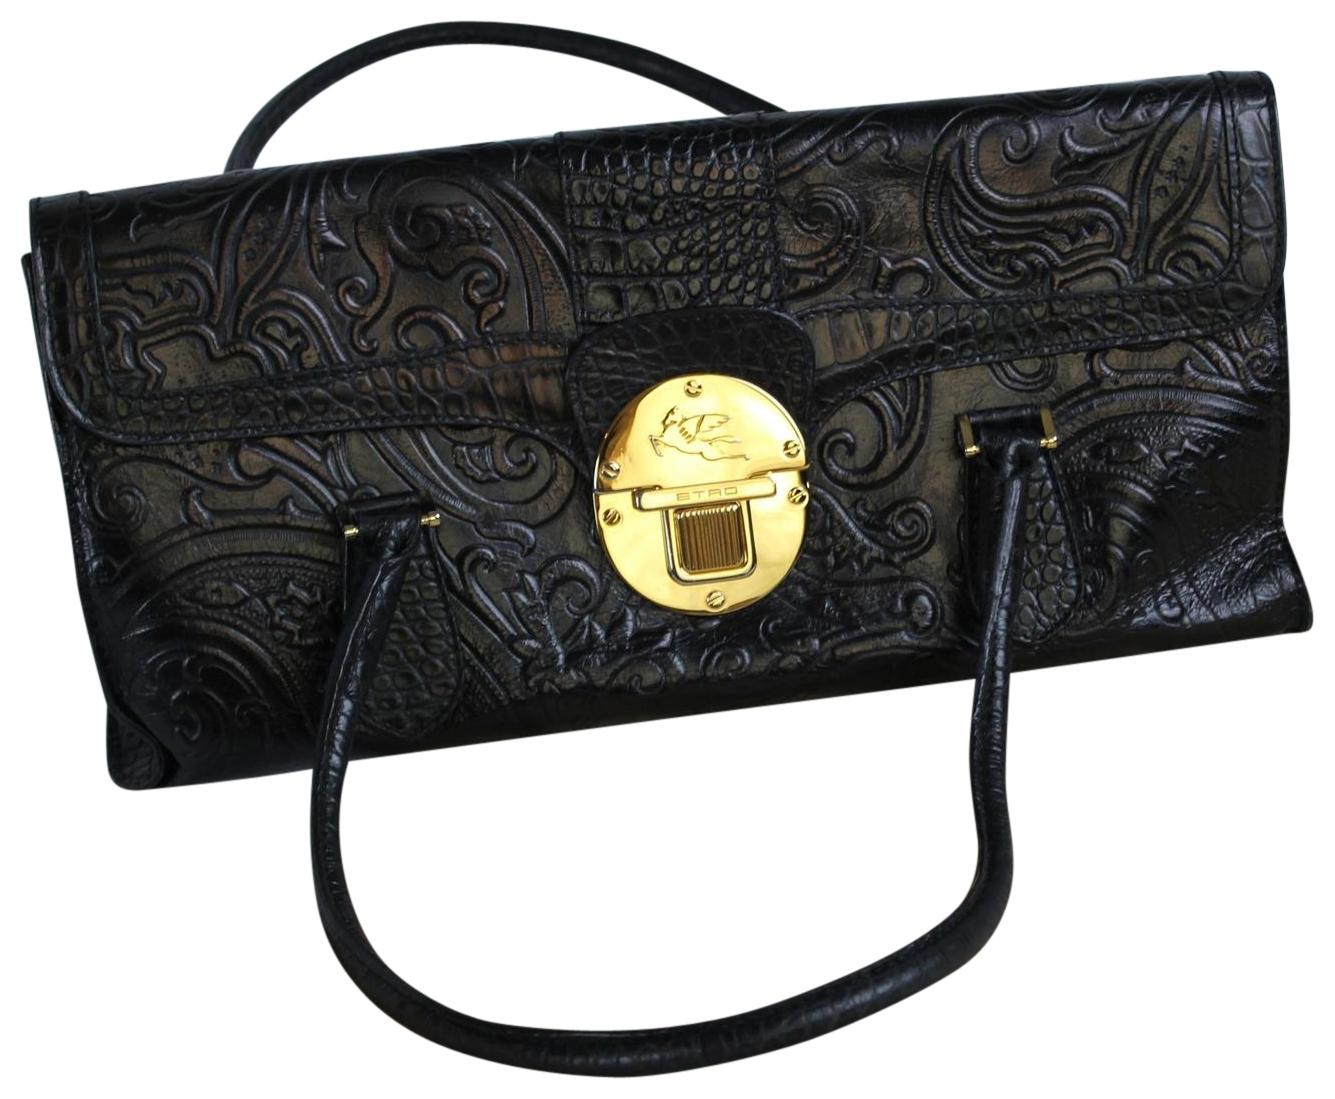 Leather shoulder bag Etro 07Nf0cKO